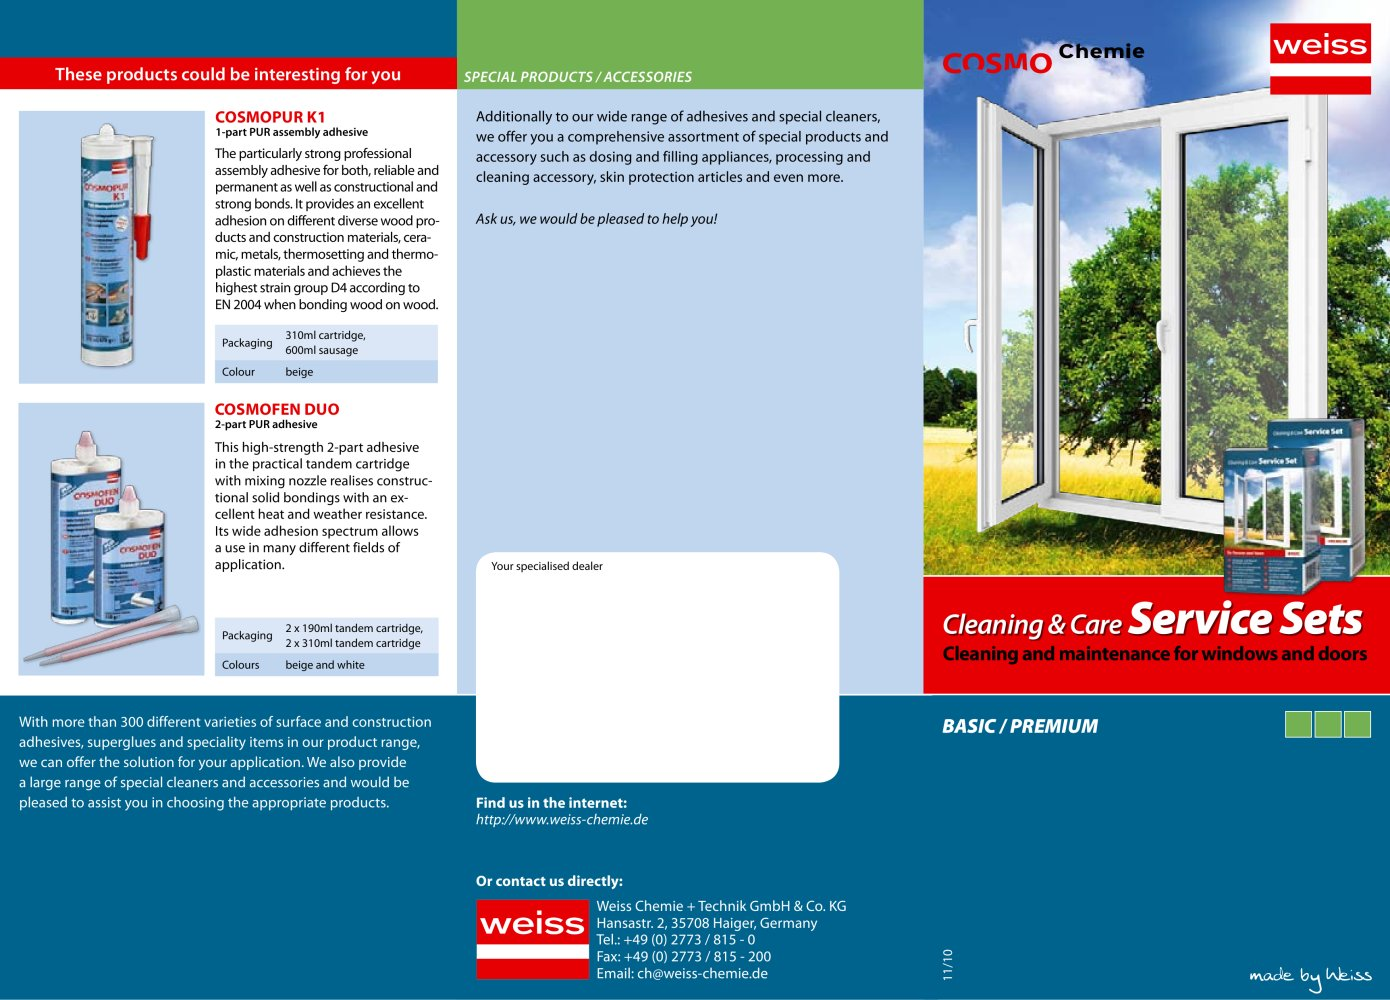 cleaning care service sets weiss chemie technik gmbh co cleaning care service sets 1 2 pages